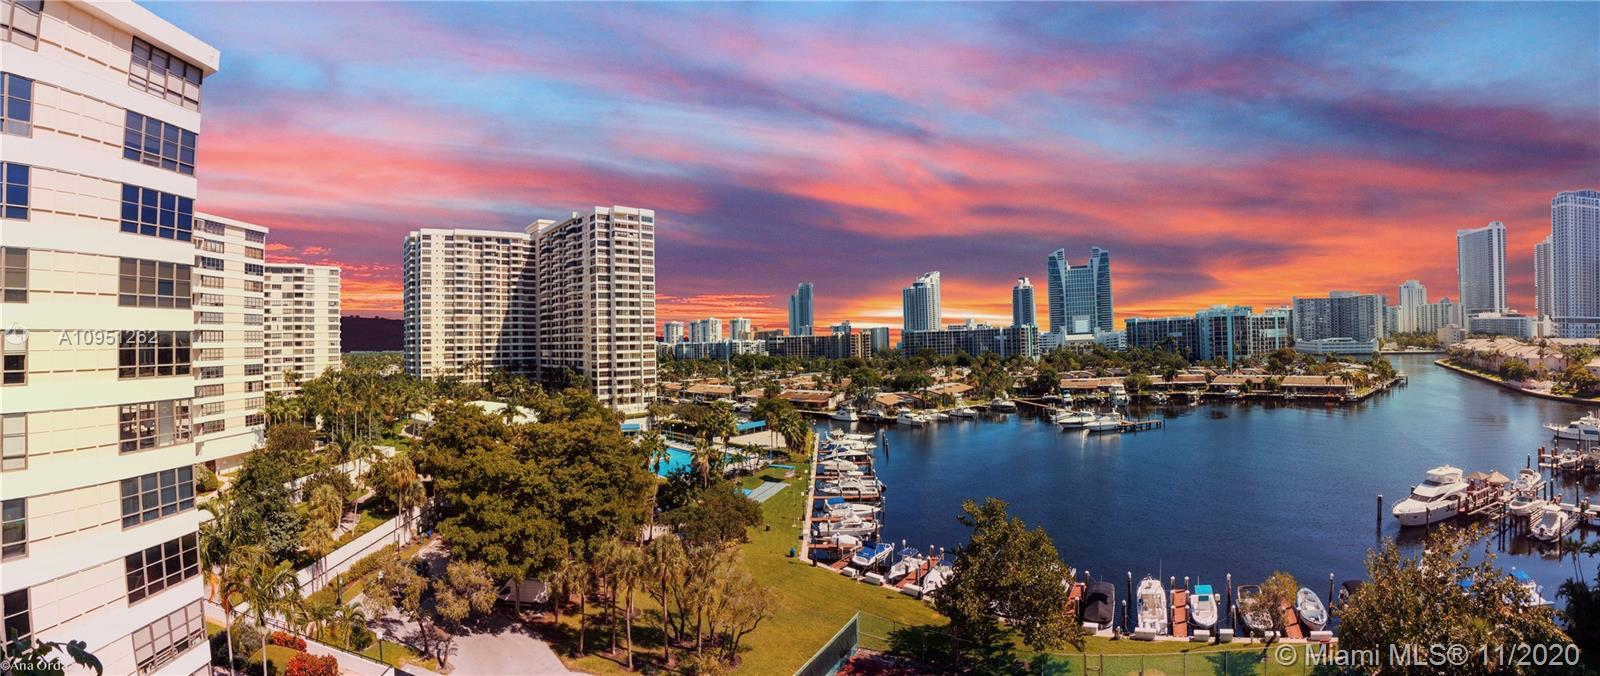 WELCOME TO THE OLYMPUS AT THREE ISLANDS SENSATIONAL VIEWS ...  INTRACOASTAL & CITY PERFECT SETTING T